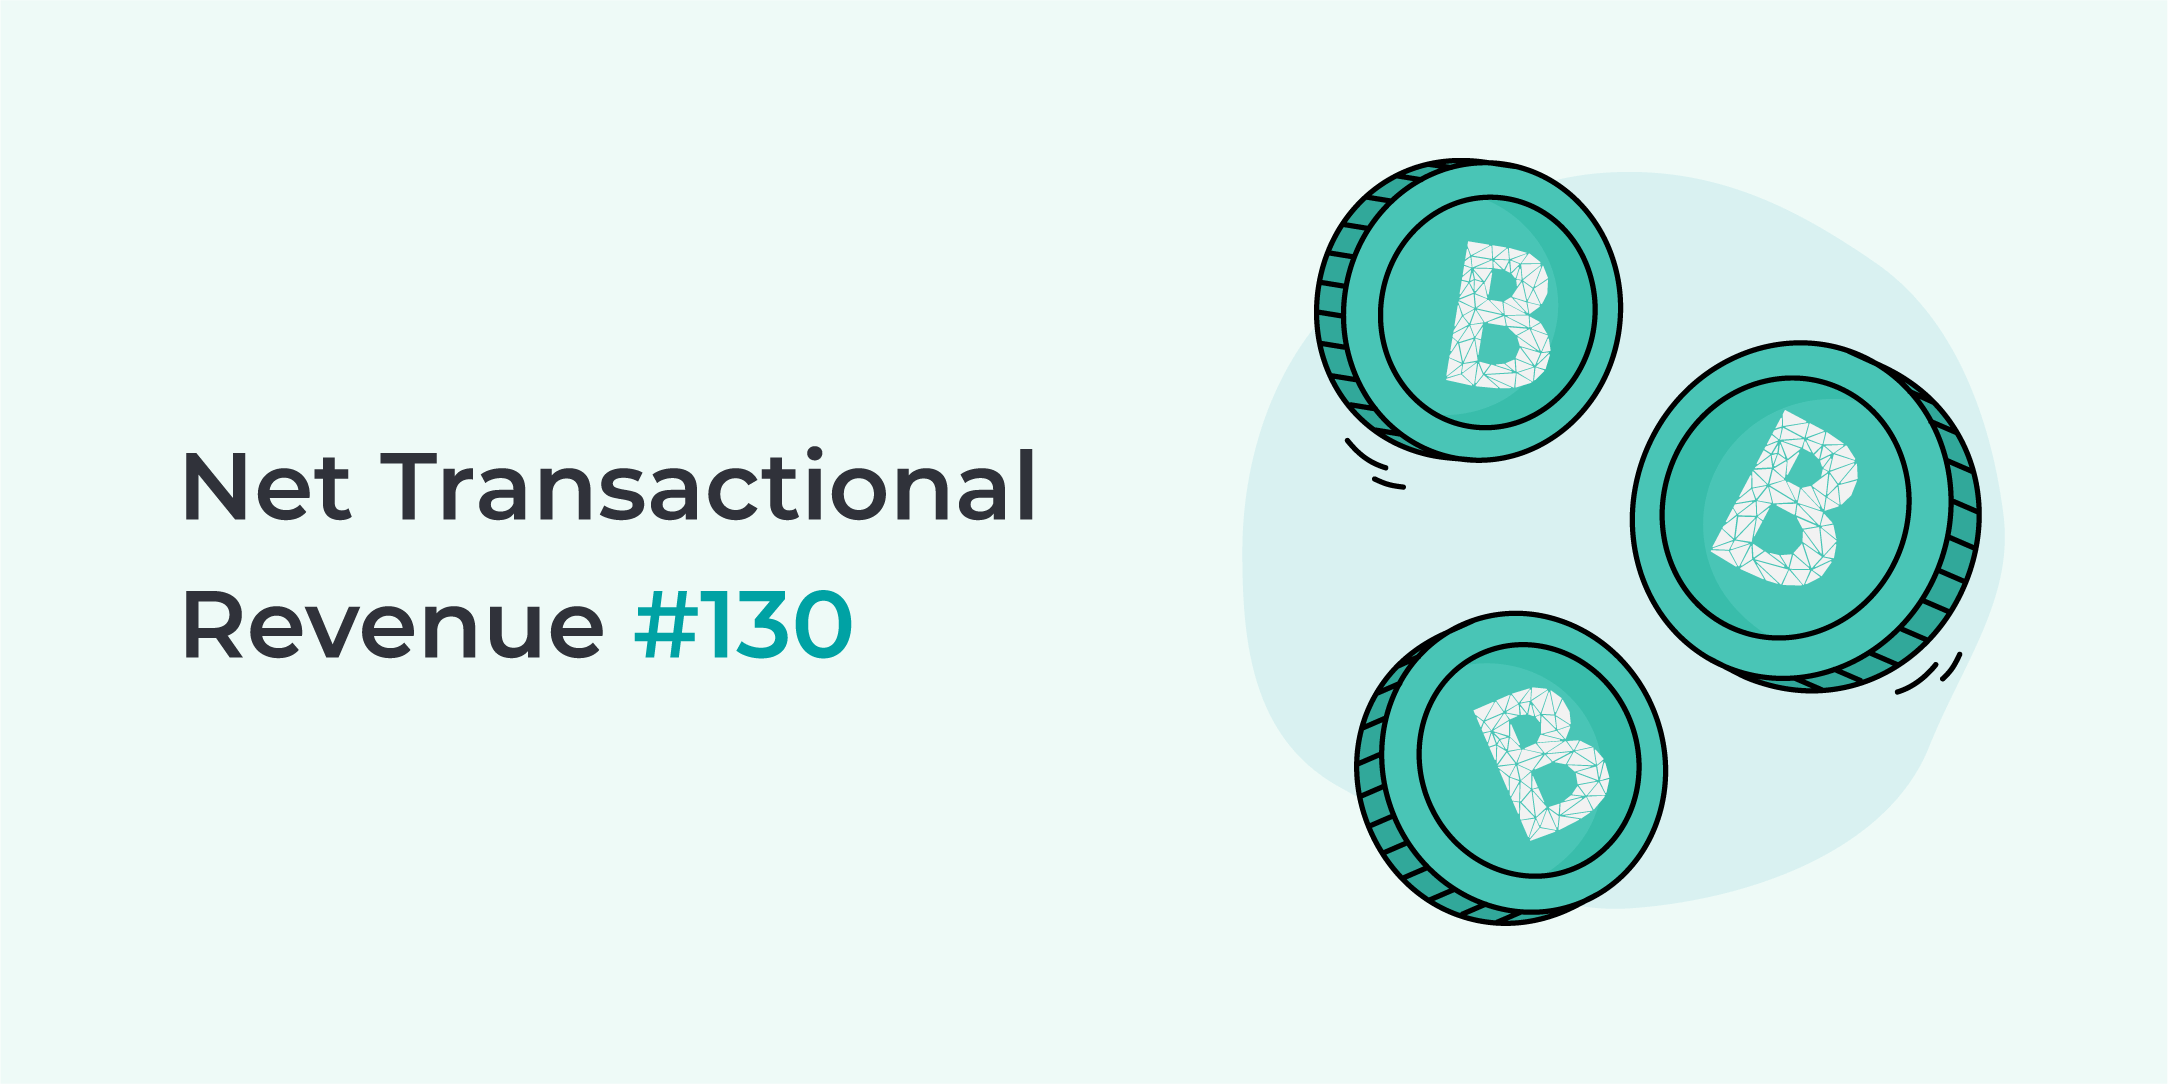 Bankera paid the 130th net transactional revenue